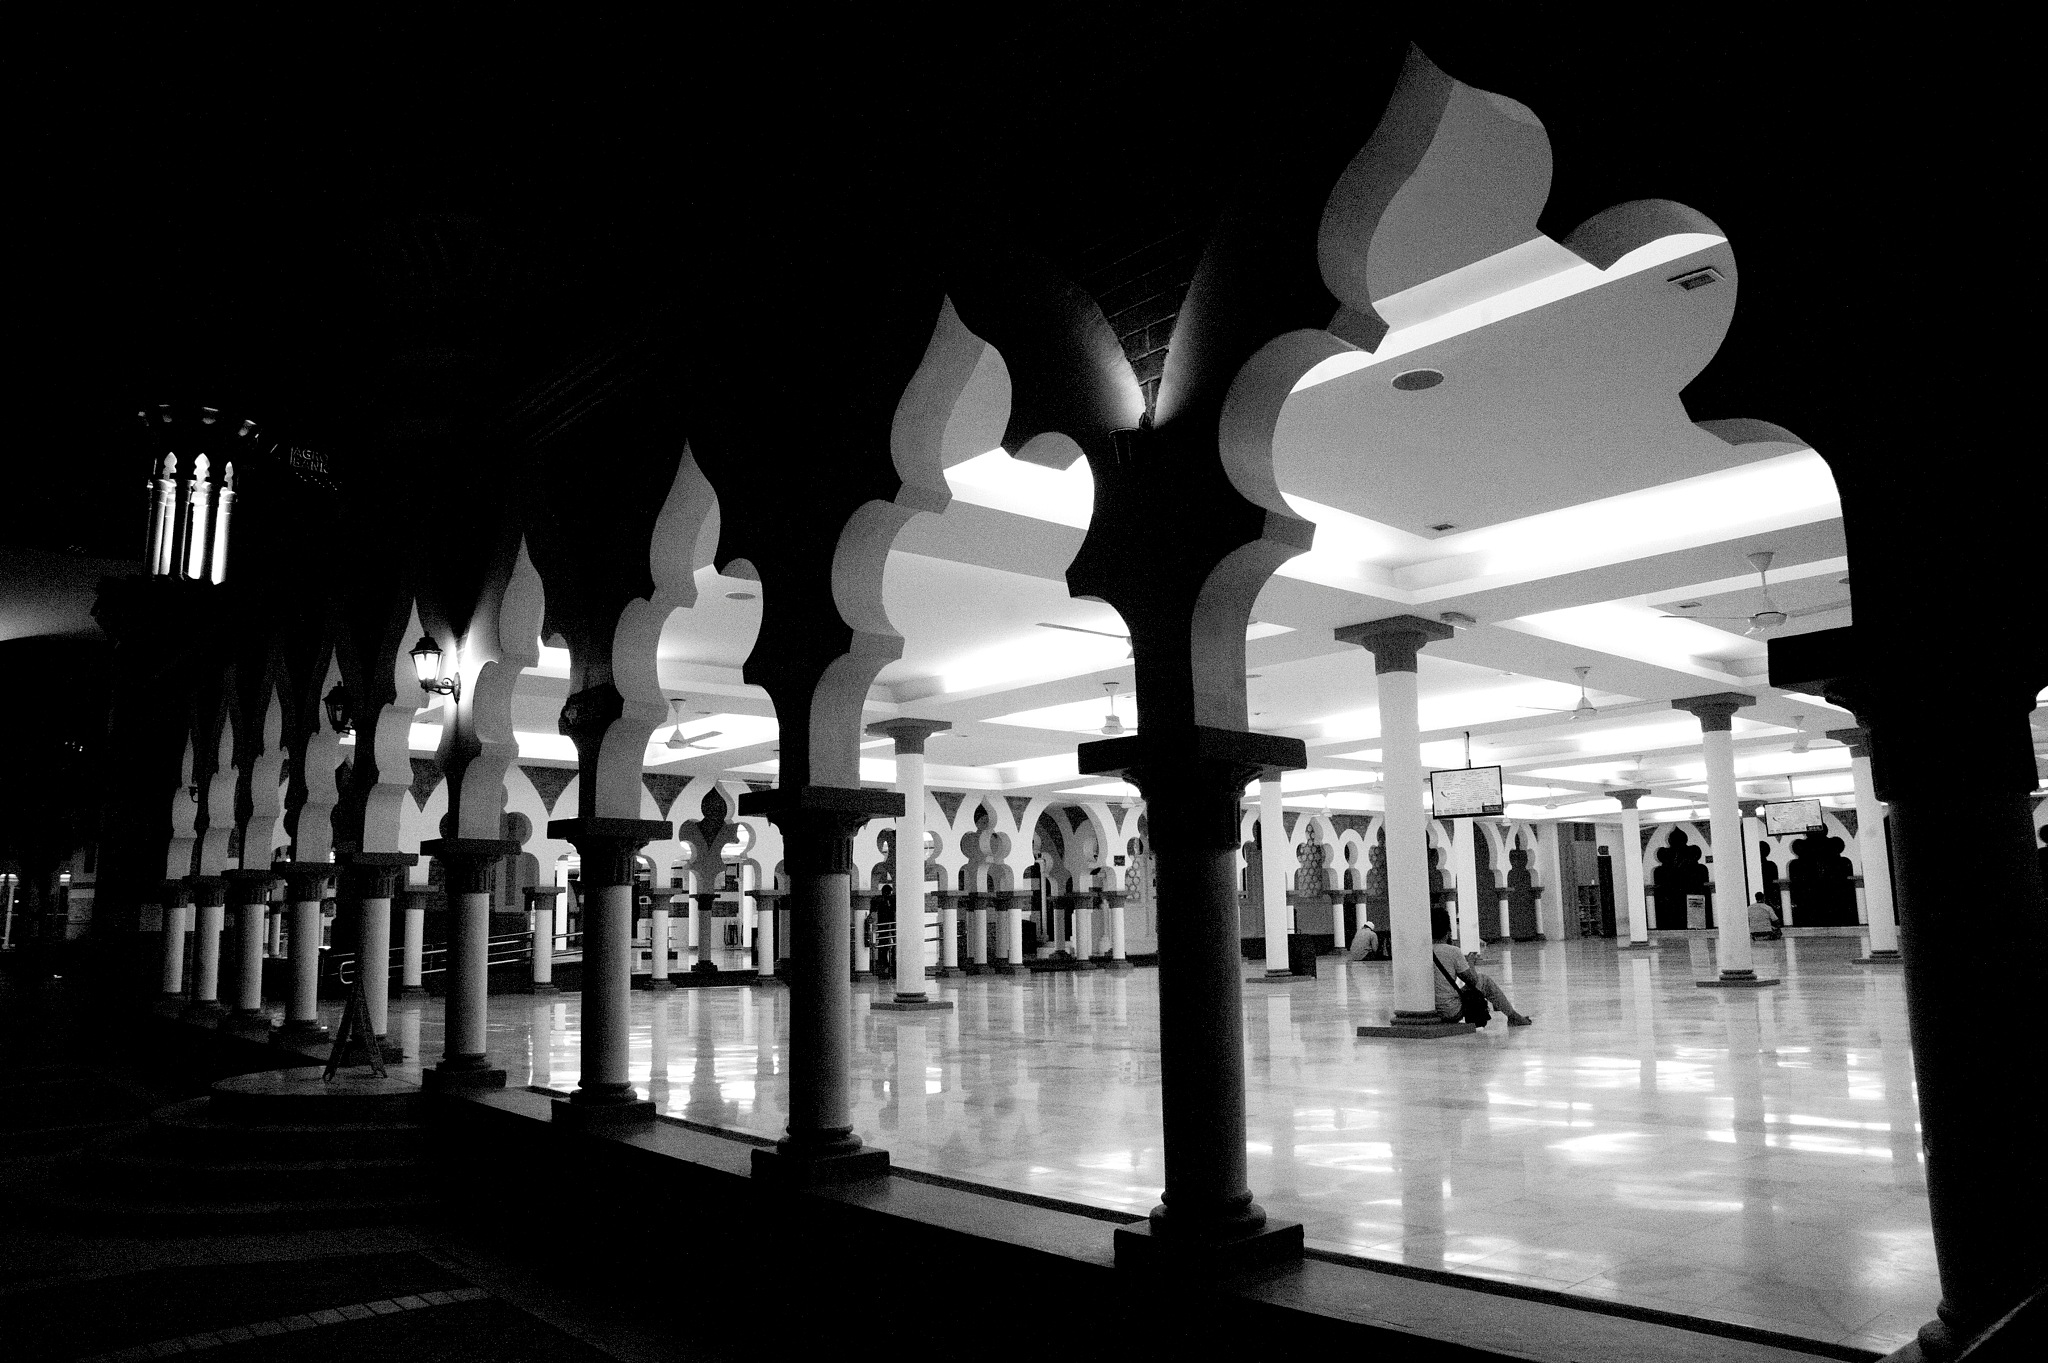 shoot the building in street in black and white series by Mustaffa Tapa Otai